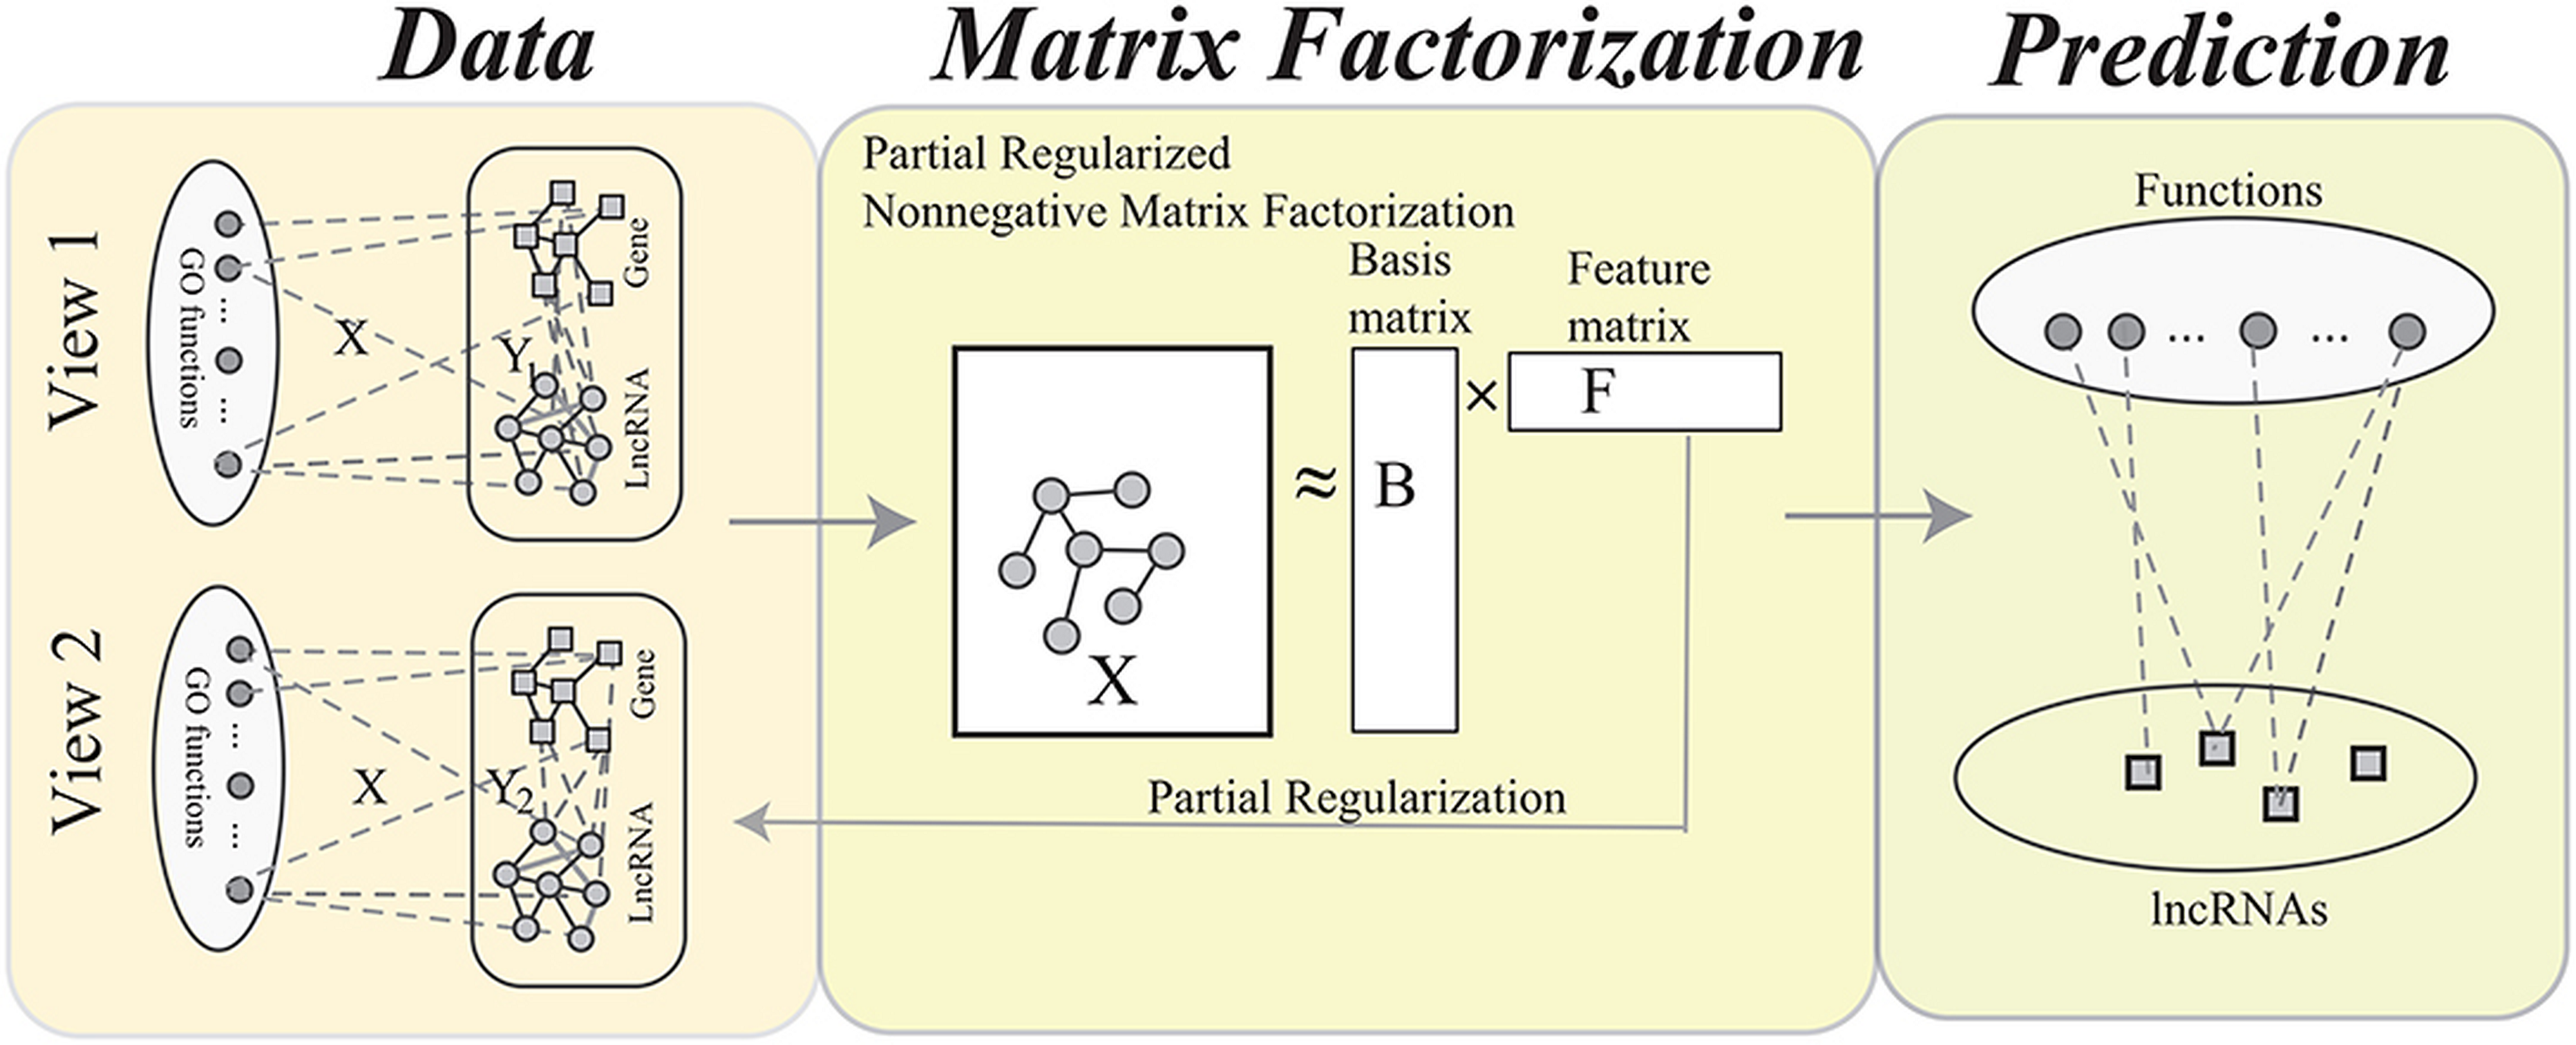 Profiling Matrix Factorization and Recommendation Engines